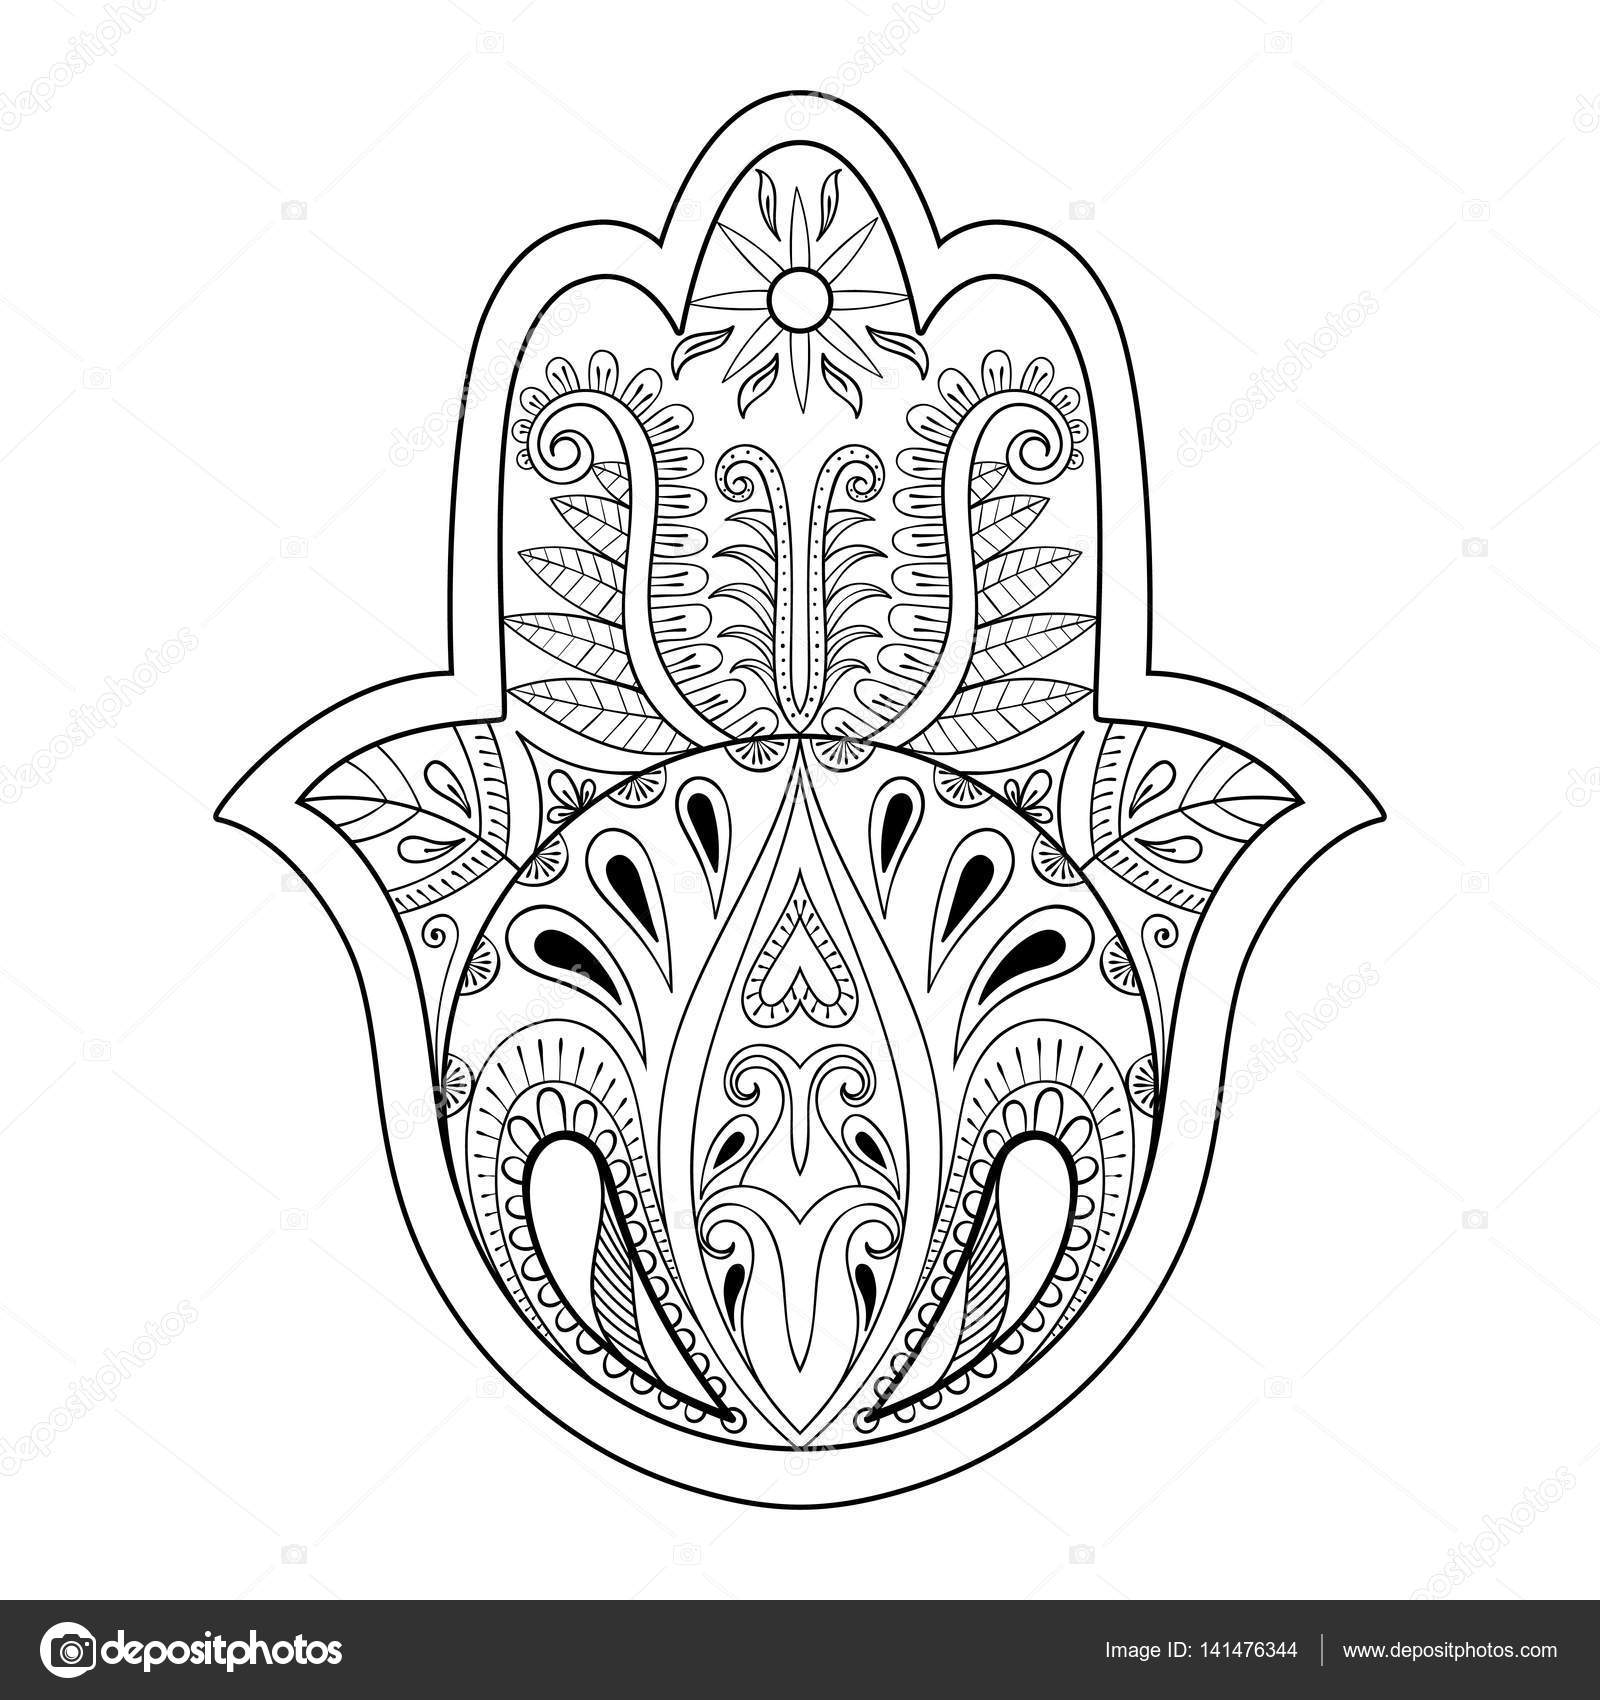 Hamsa Hand Vector Illustration Drawn Symbol Of Prayer For Adult Anti Stress Coloring Book Page In Zentangle Style Blackwork Yoga Tattoo Design